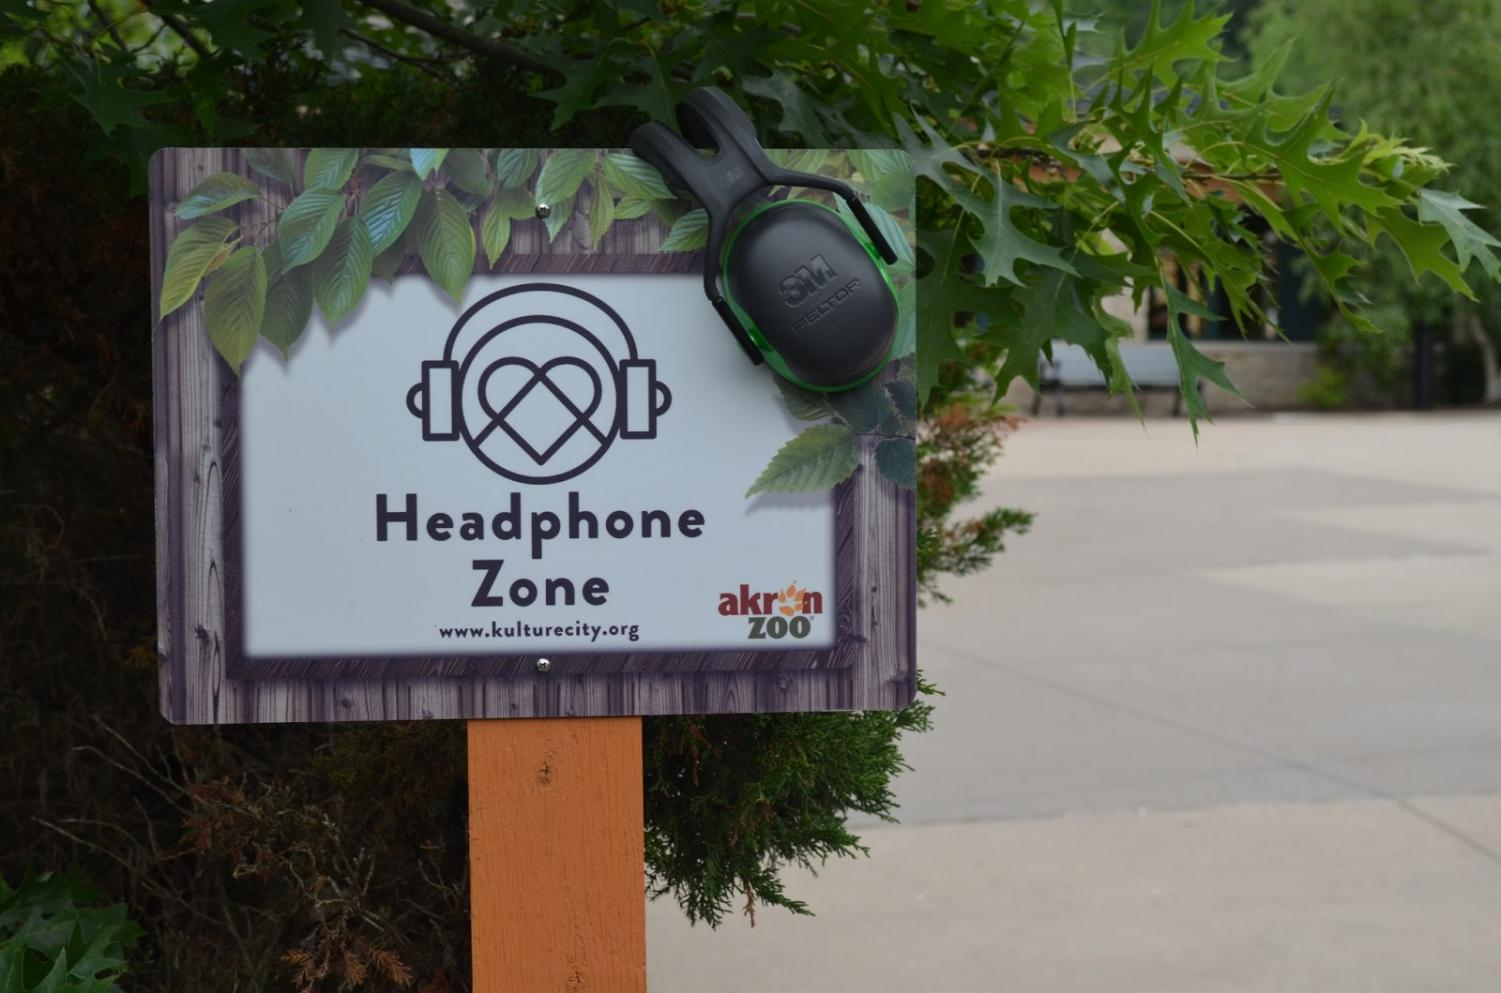 Headphone Zones are loud areas where people with sensory problems are encouraged to wear their noise-canceling headphones provided by the zoo. (Photo courtesy of Akron Zoo)